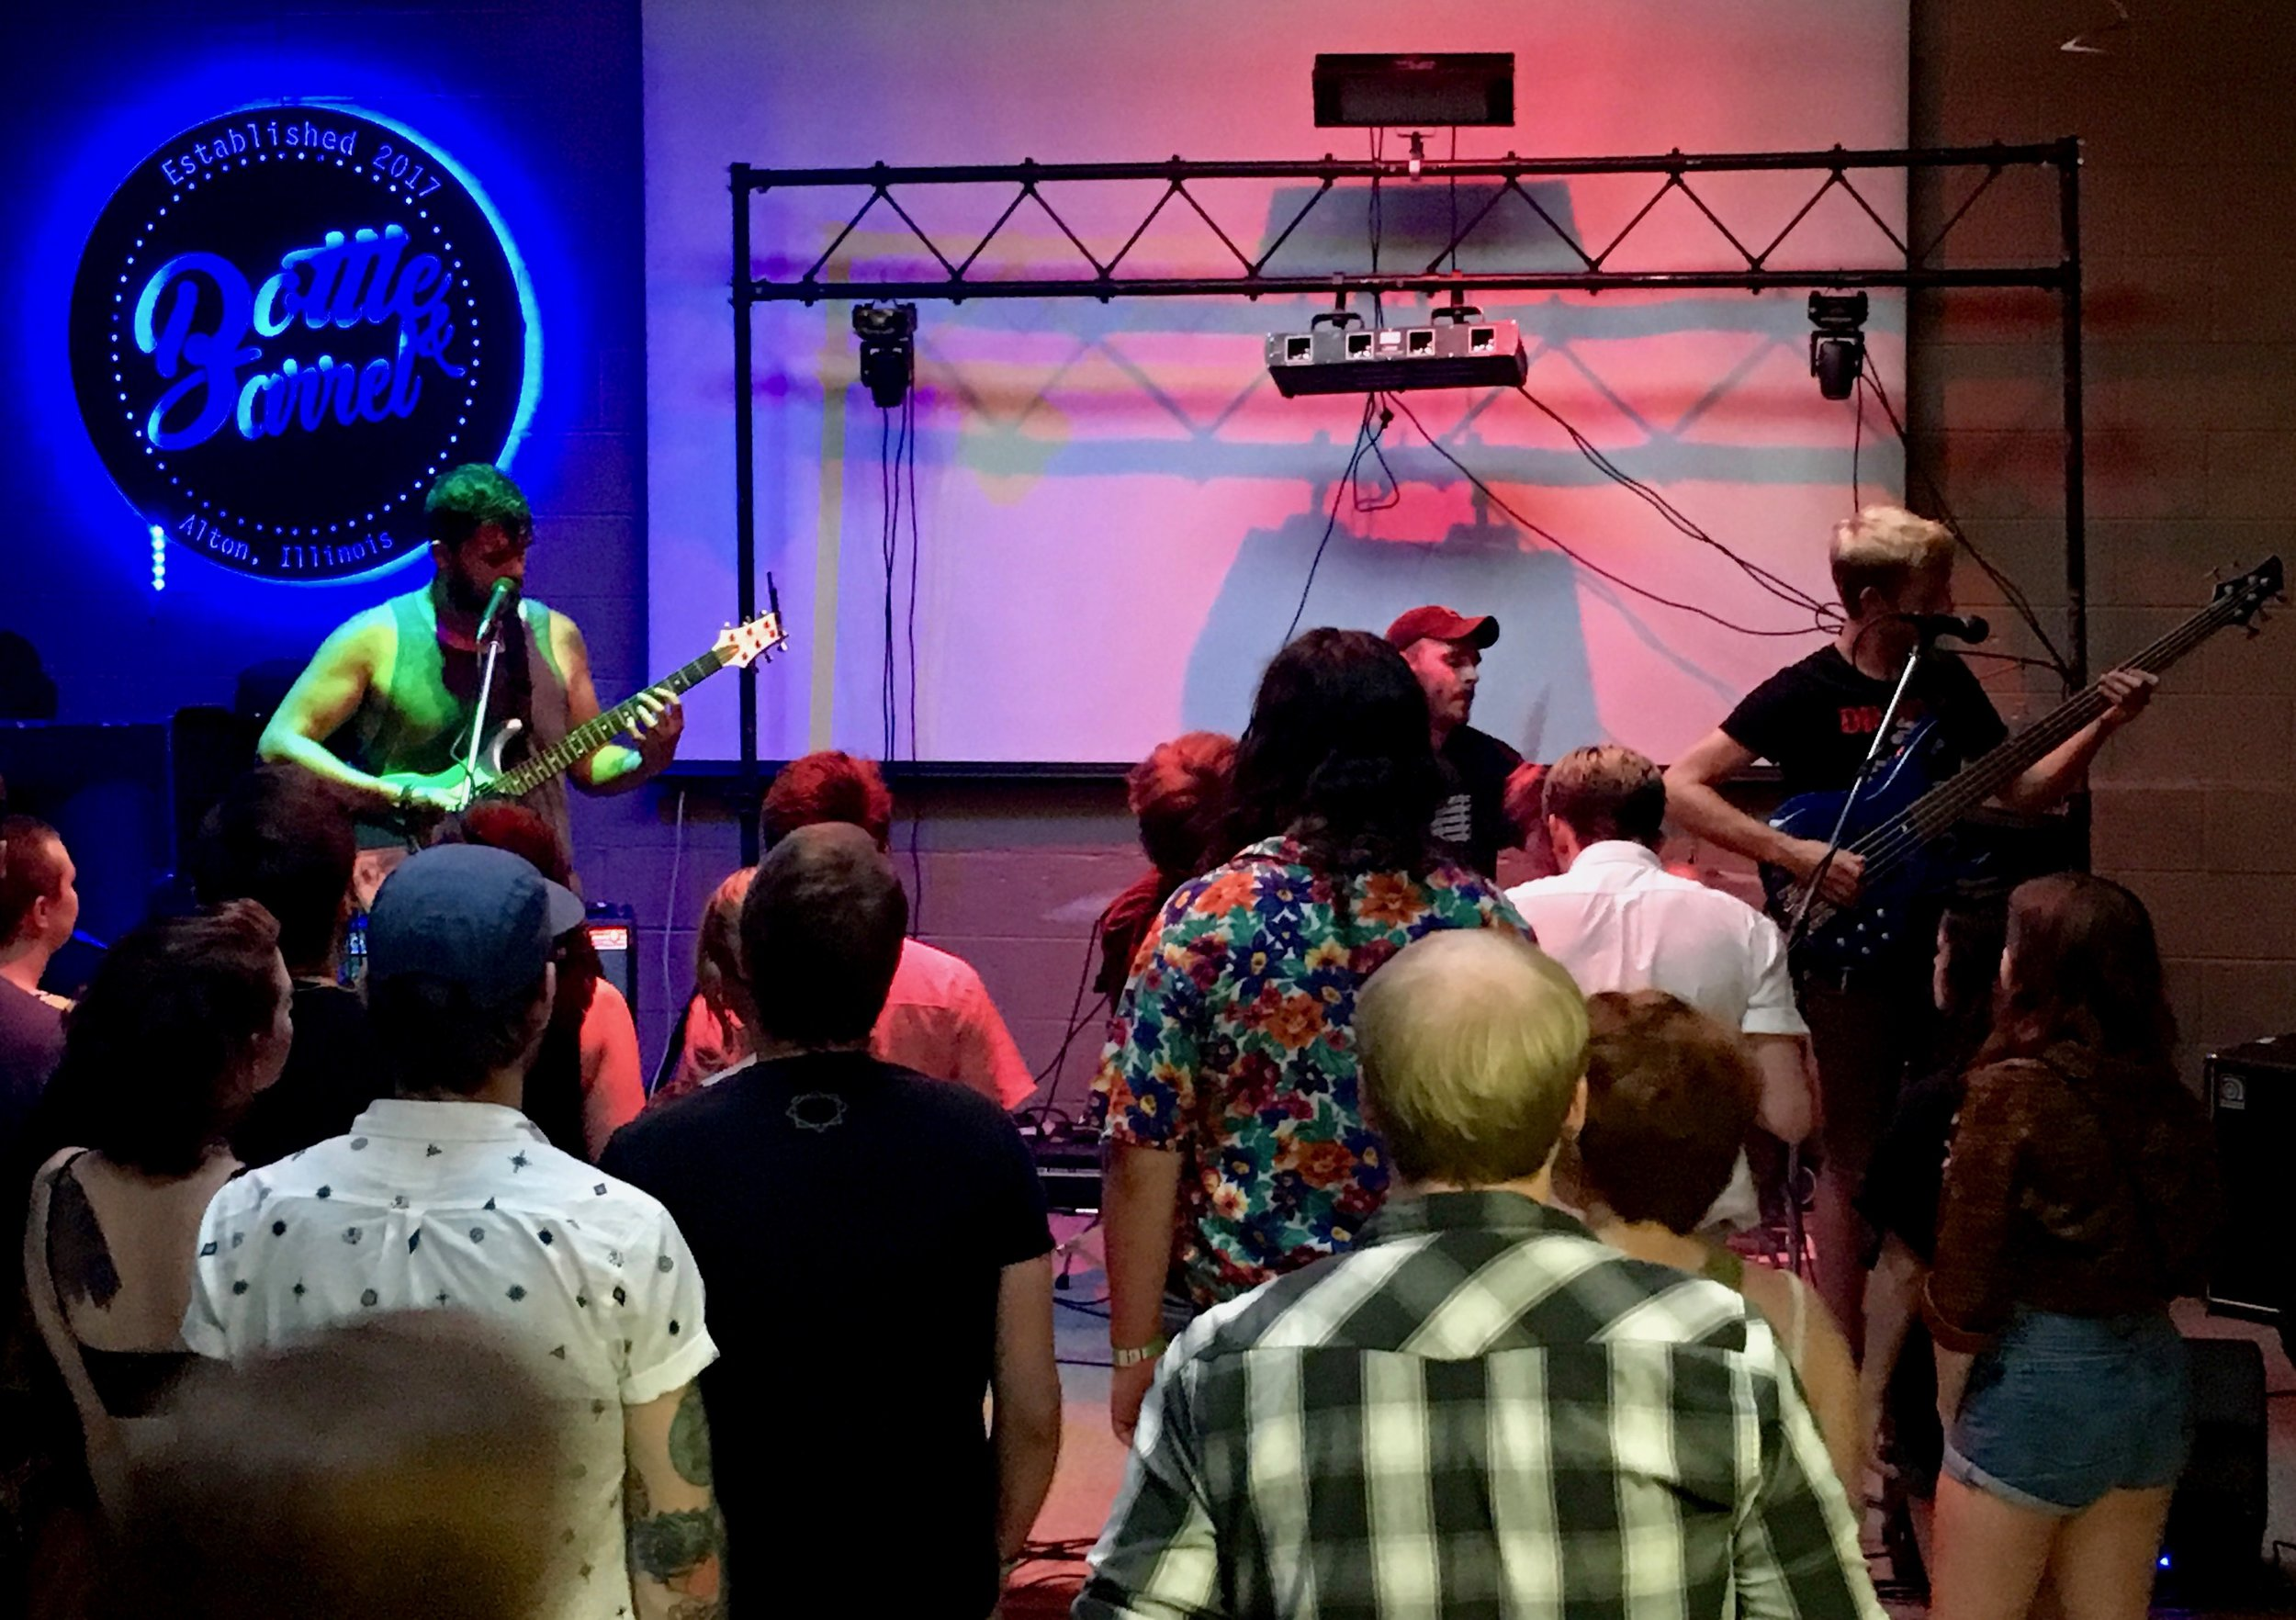 Biff K'narly and the Reptilians jam at another Rock the Hops location, Bottle & Barrel. Photo by Rosita